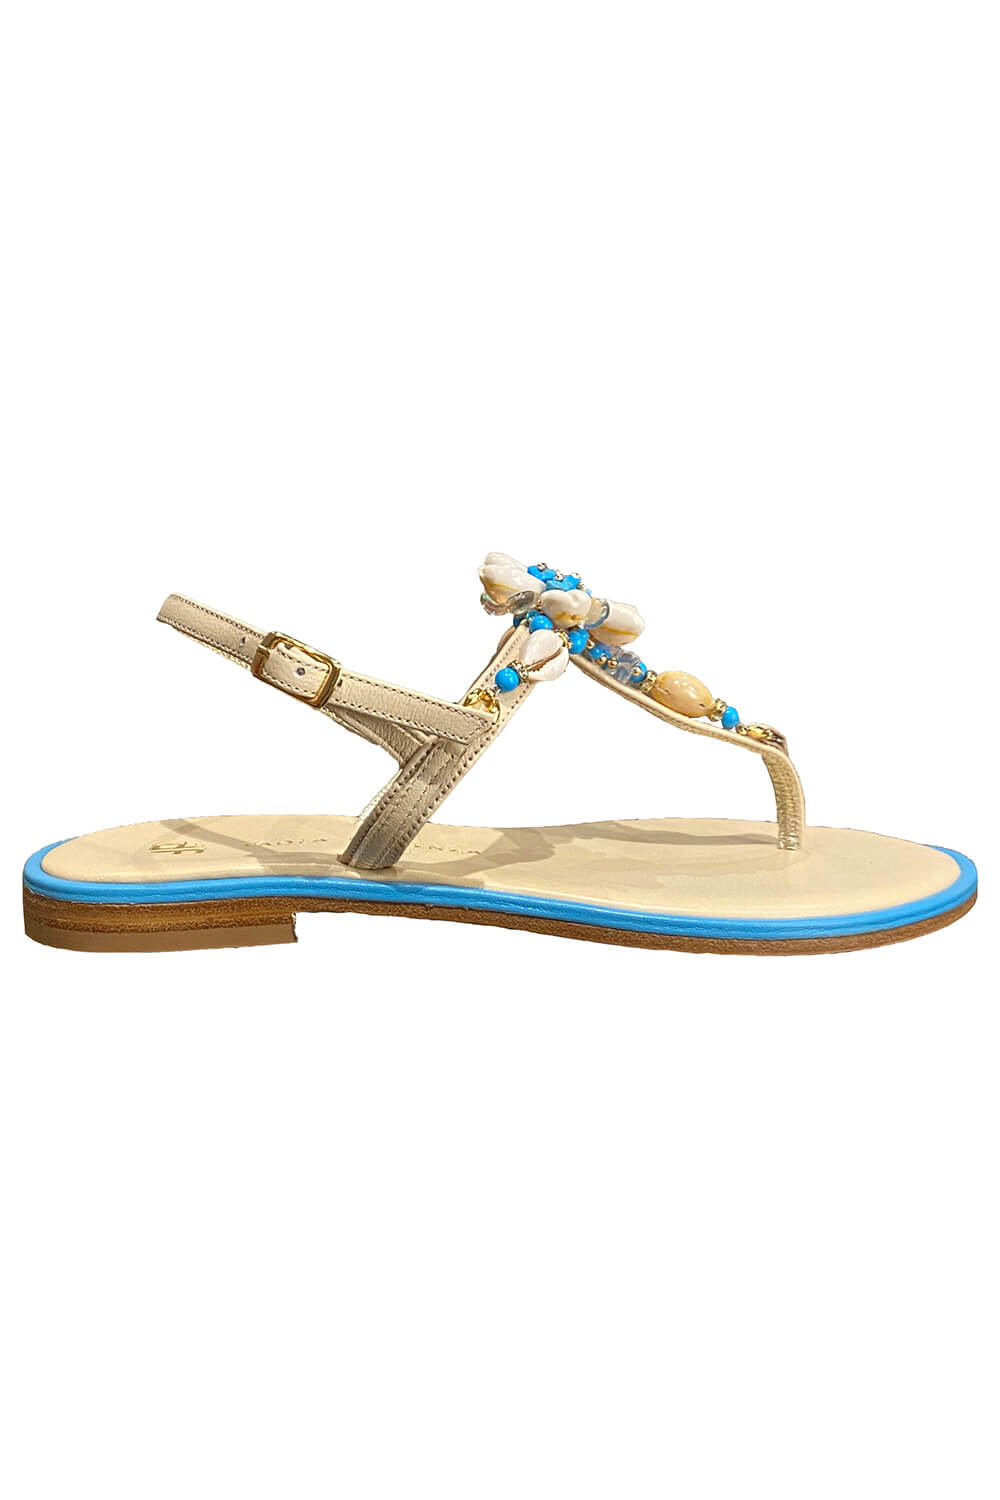 PAOLA FIORENZA turquoise and beige Capri sandals with a flower made of shells and Swarovski stones in nappa leather CONCHIGLIA